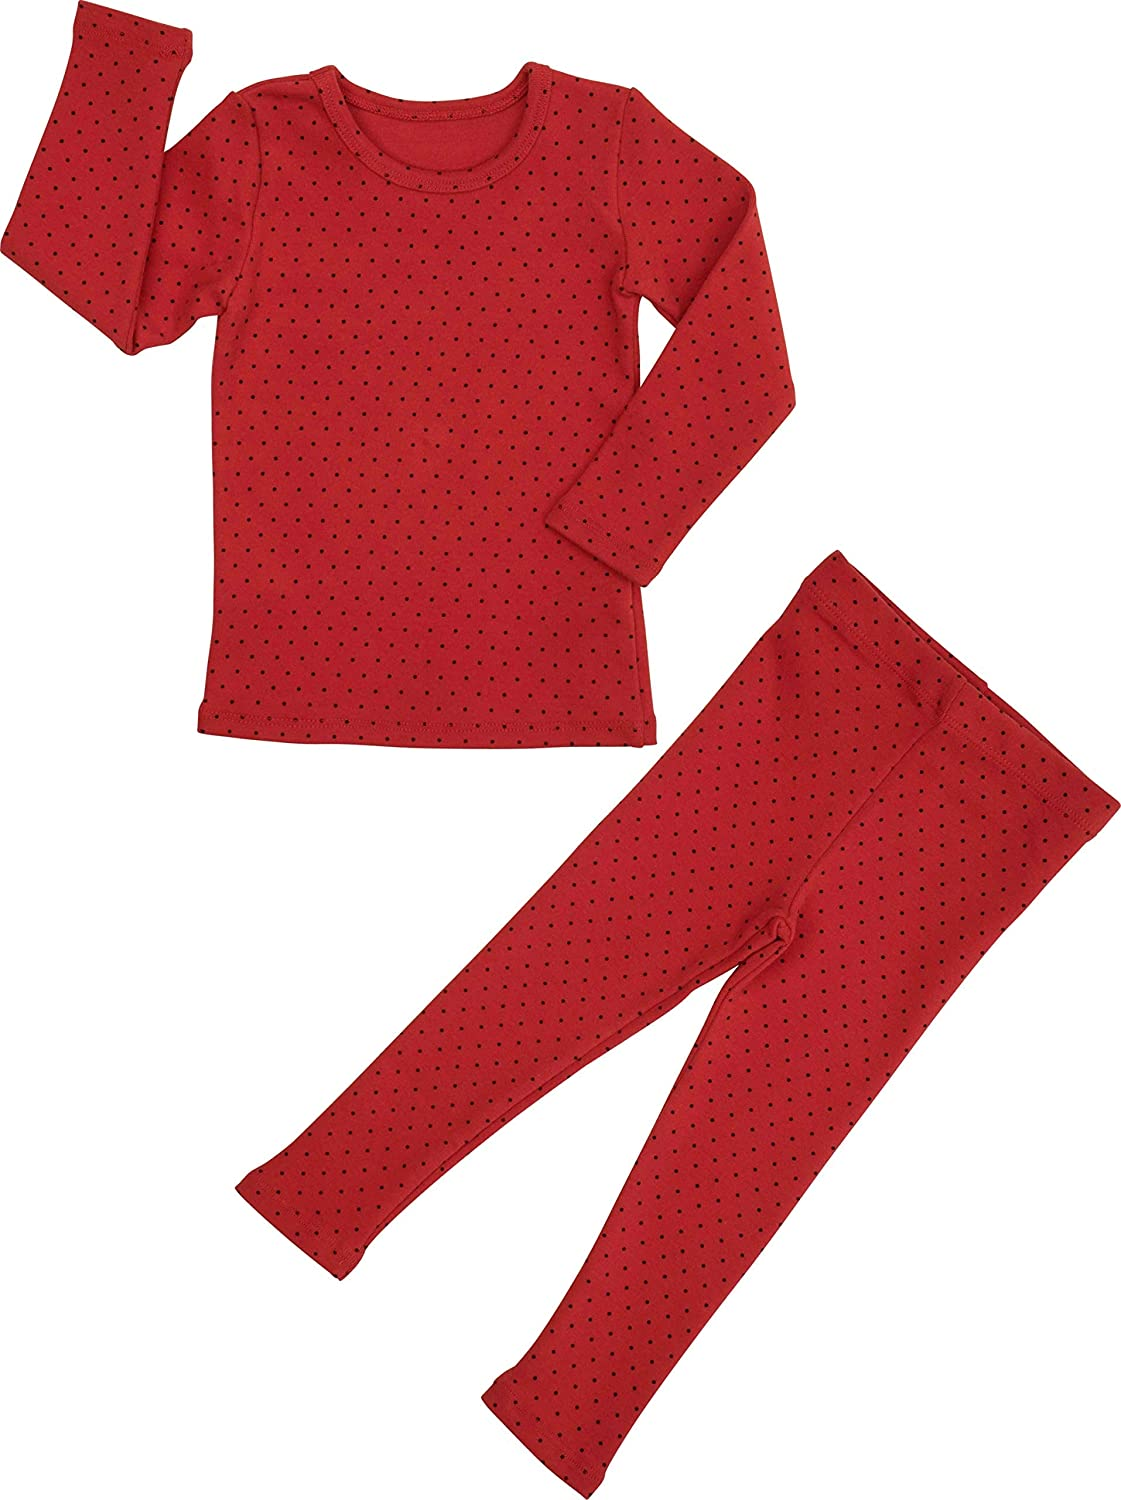 Baby Boys Girls Polka dot Pajama Set 6M-8T Kids Toddler Snug fit Cotton Sleepwear